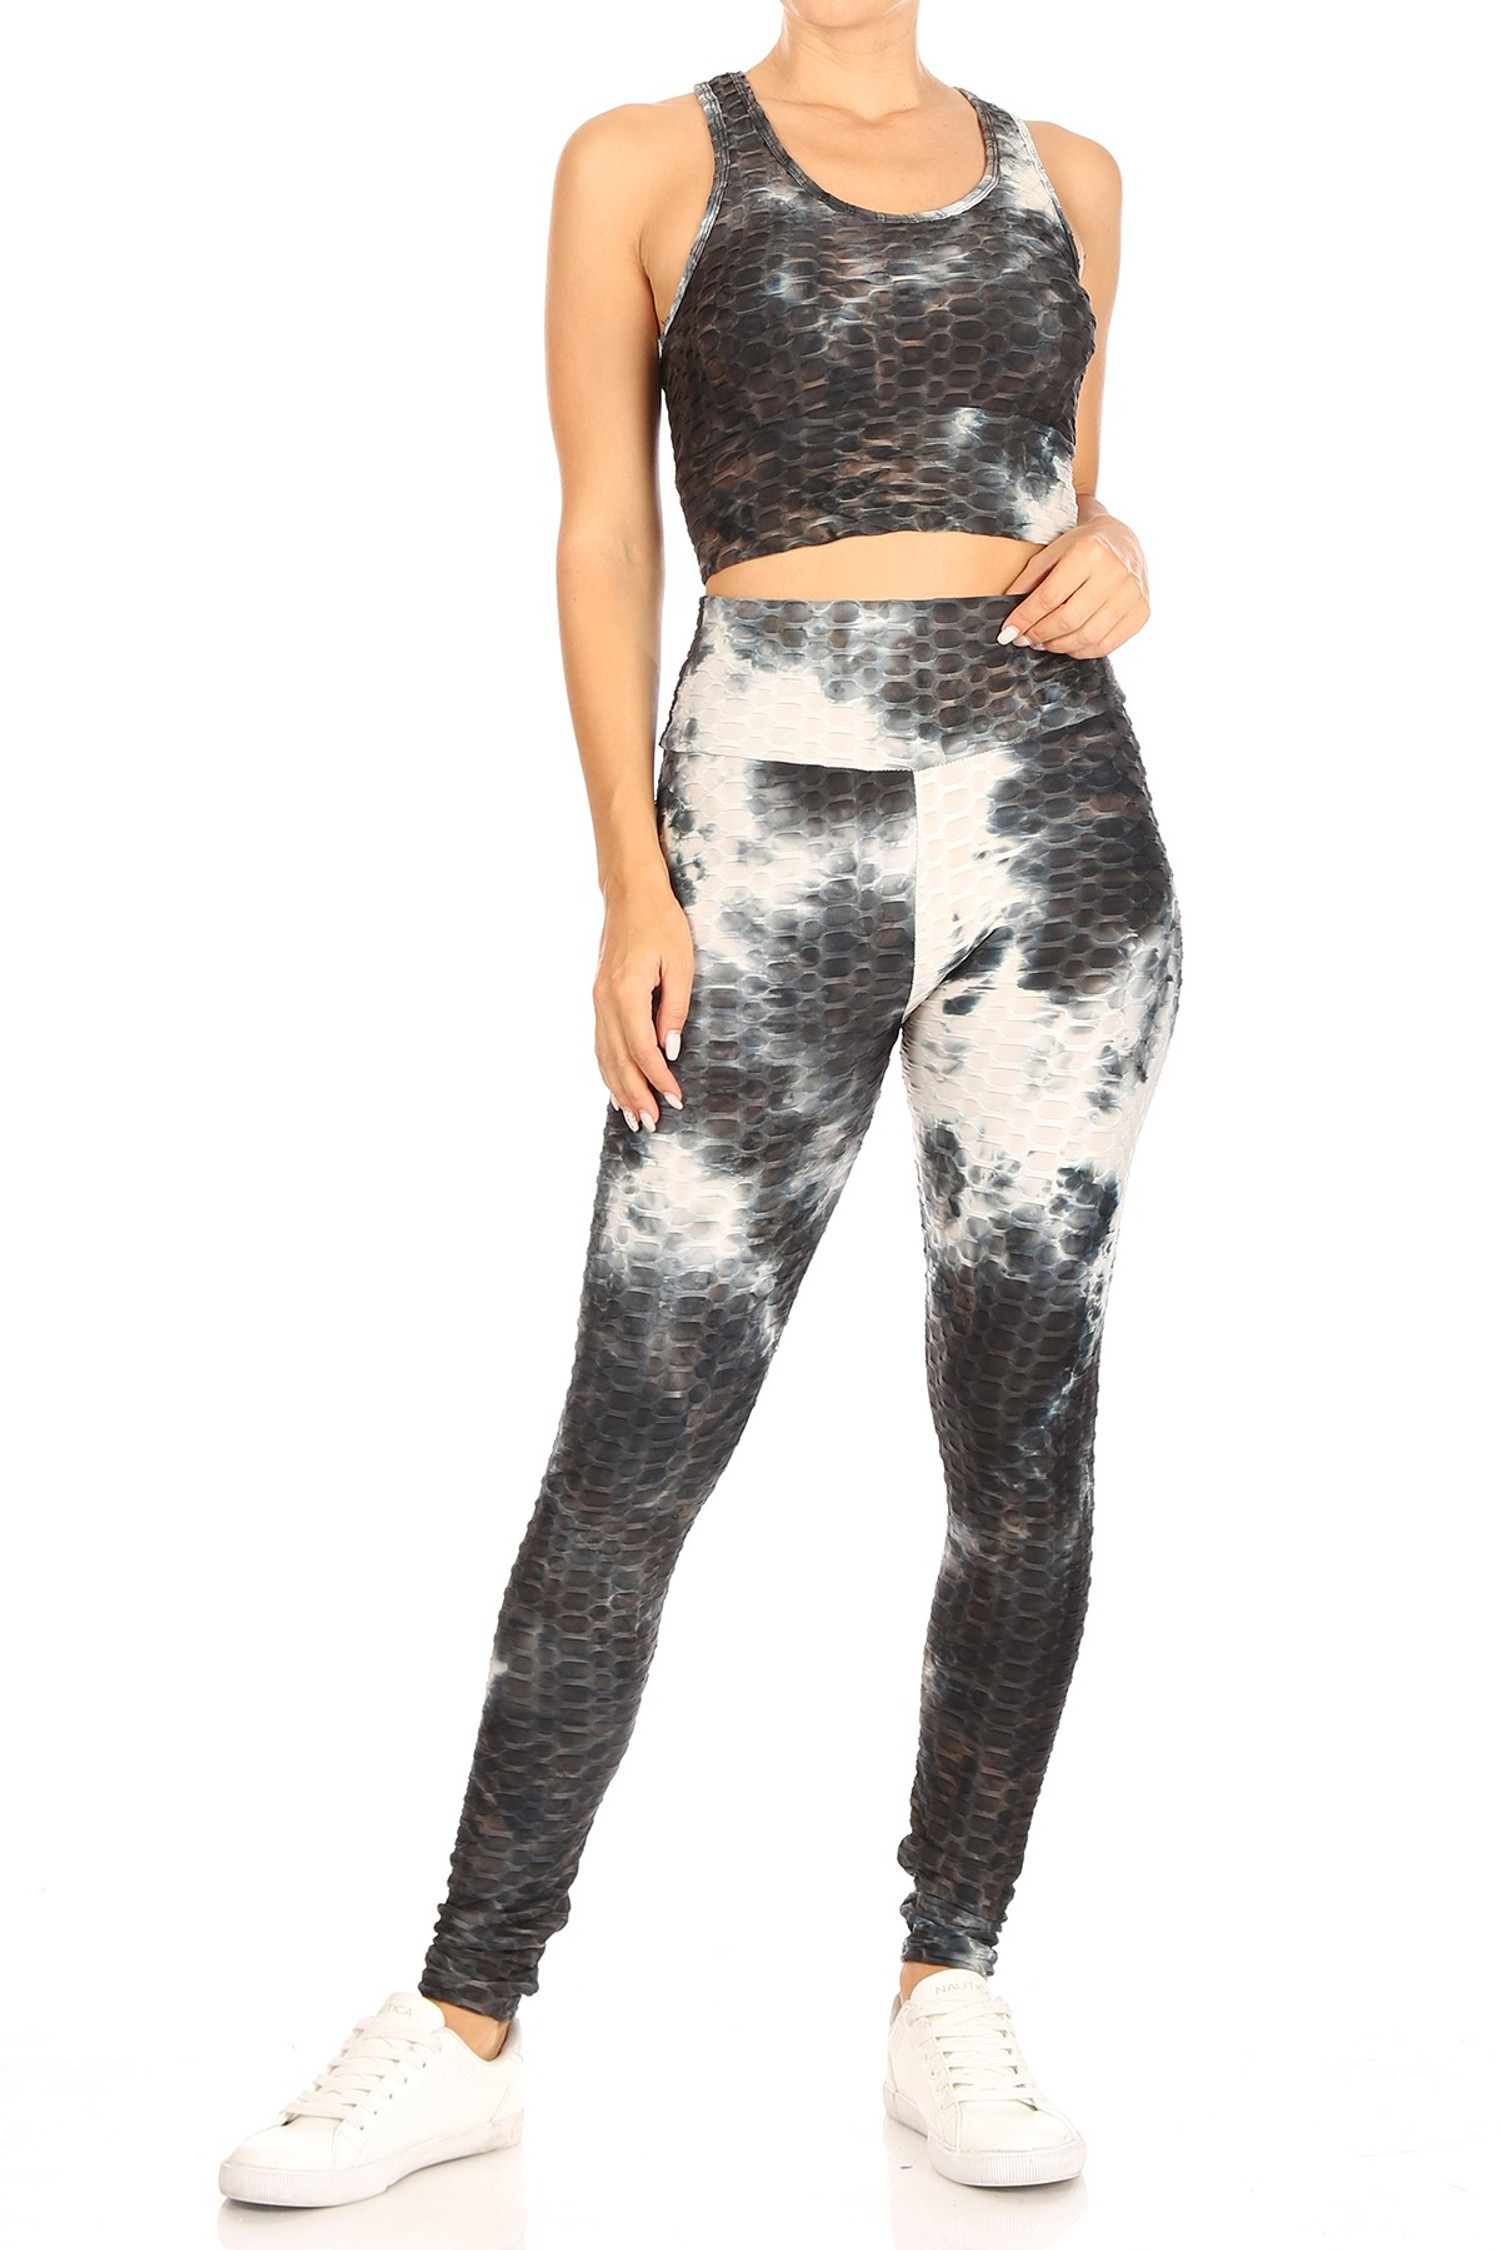 Black Tie Dye Scrunch Butt Top and Leggings Set